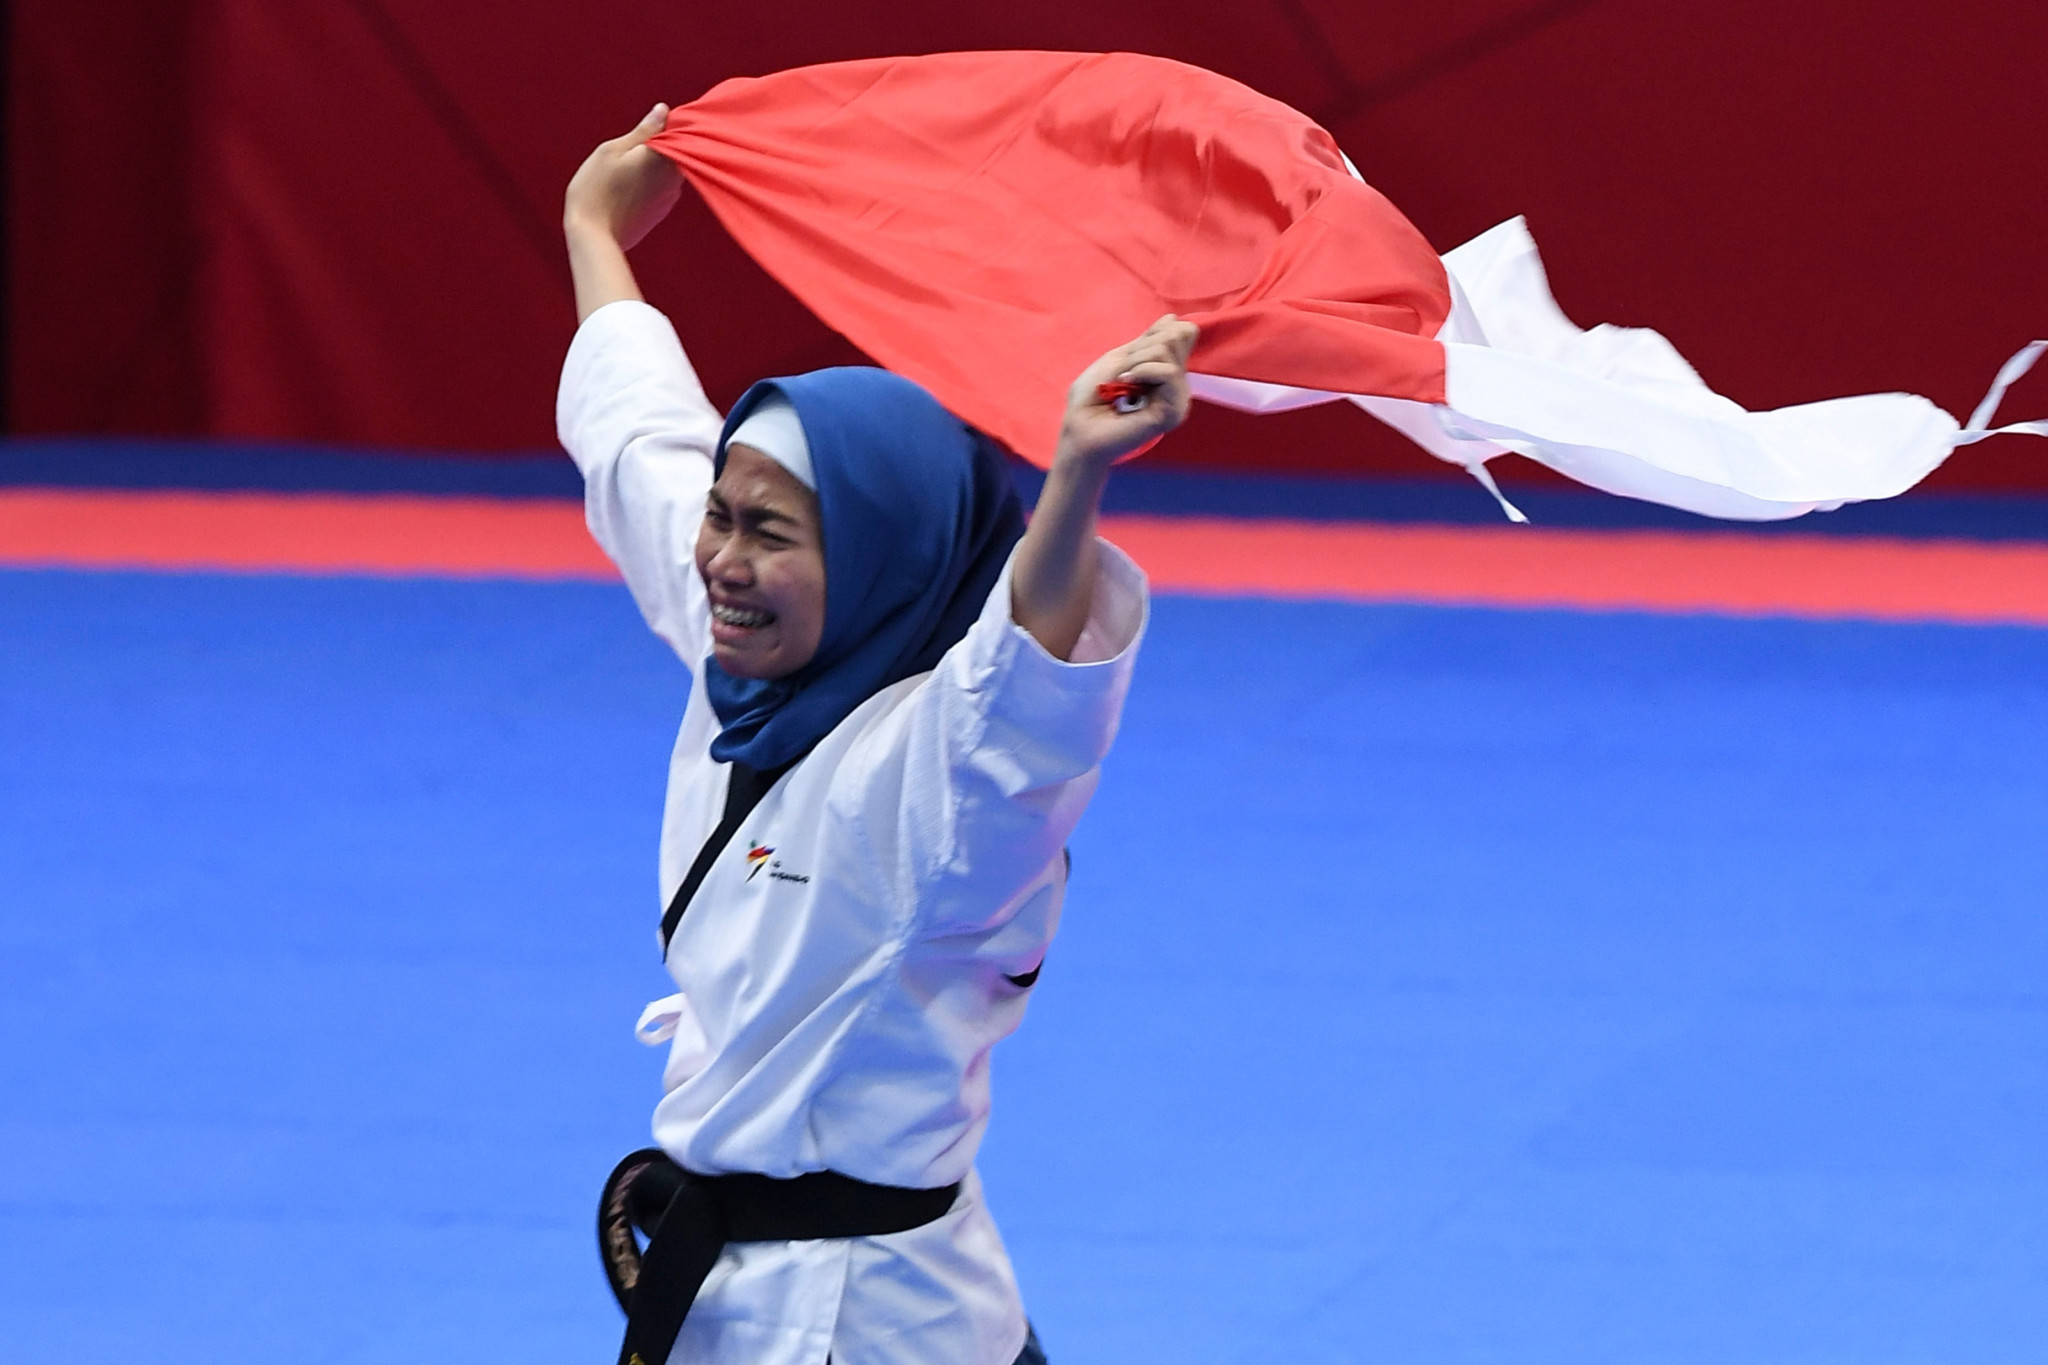 Indonesia entered the race for the 2032 Games after hosting the Asian Games in 2018 ©Getty Images